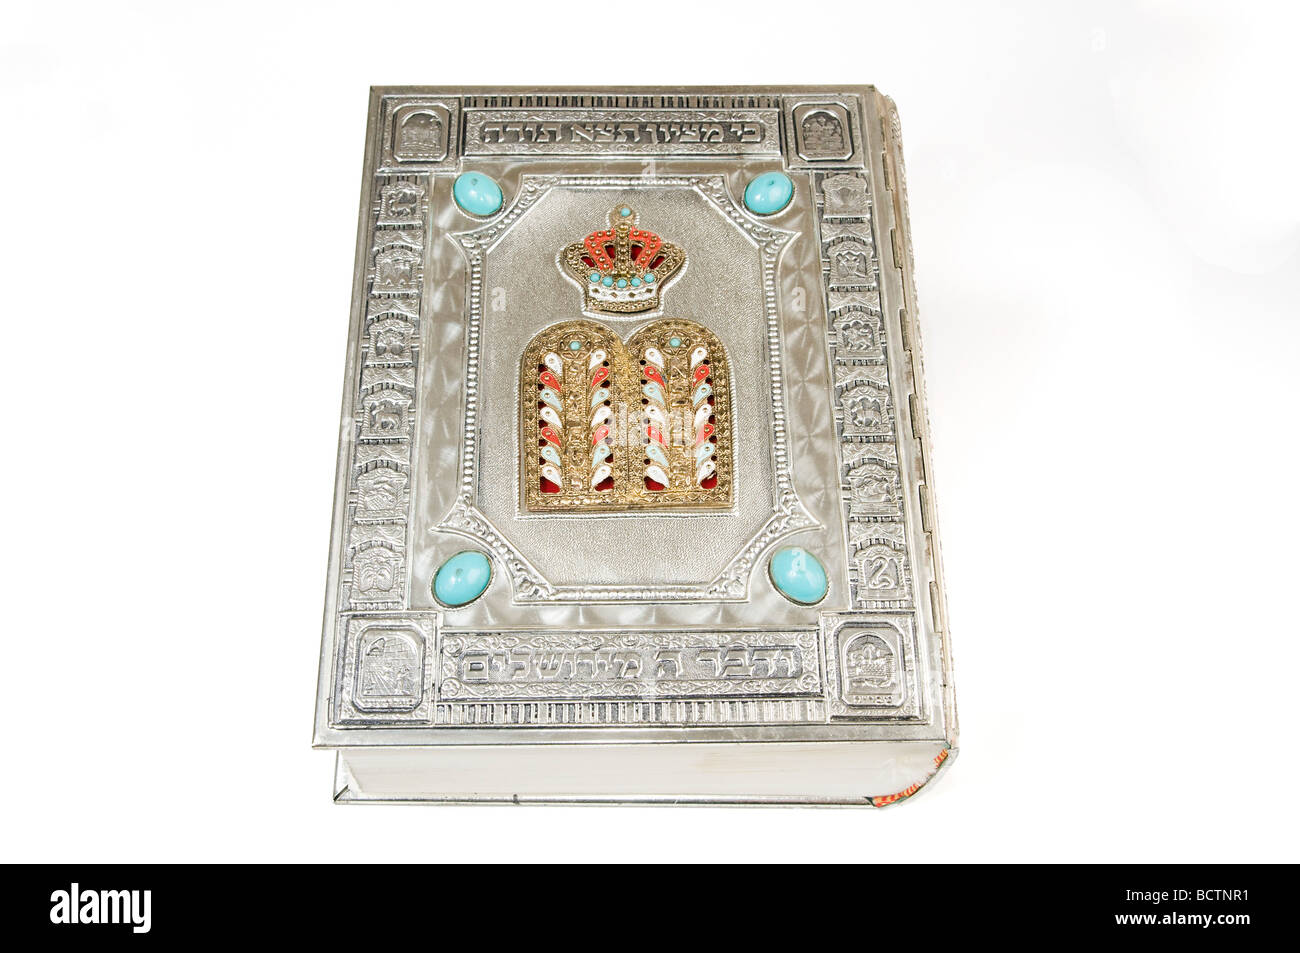 Cutout of a silver bound Holy Bible on white background - Stock Image